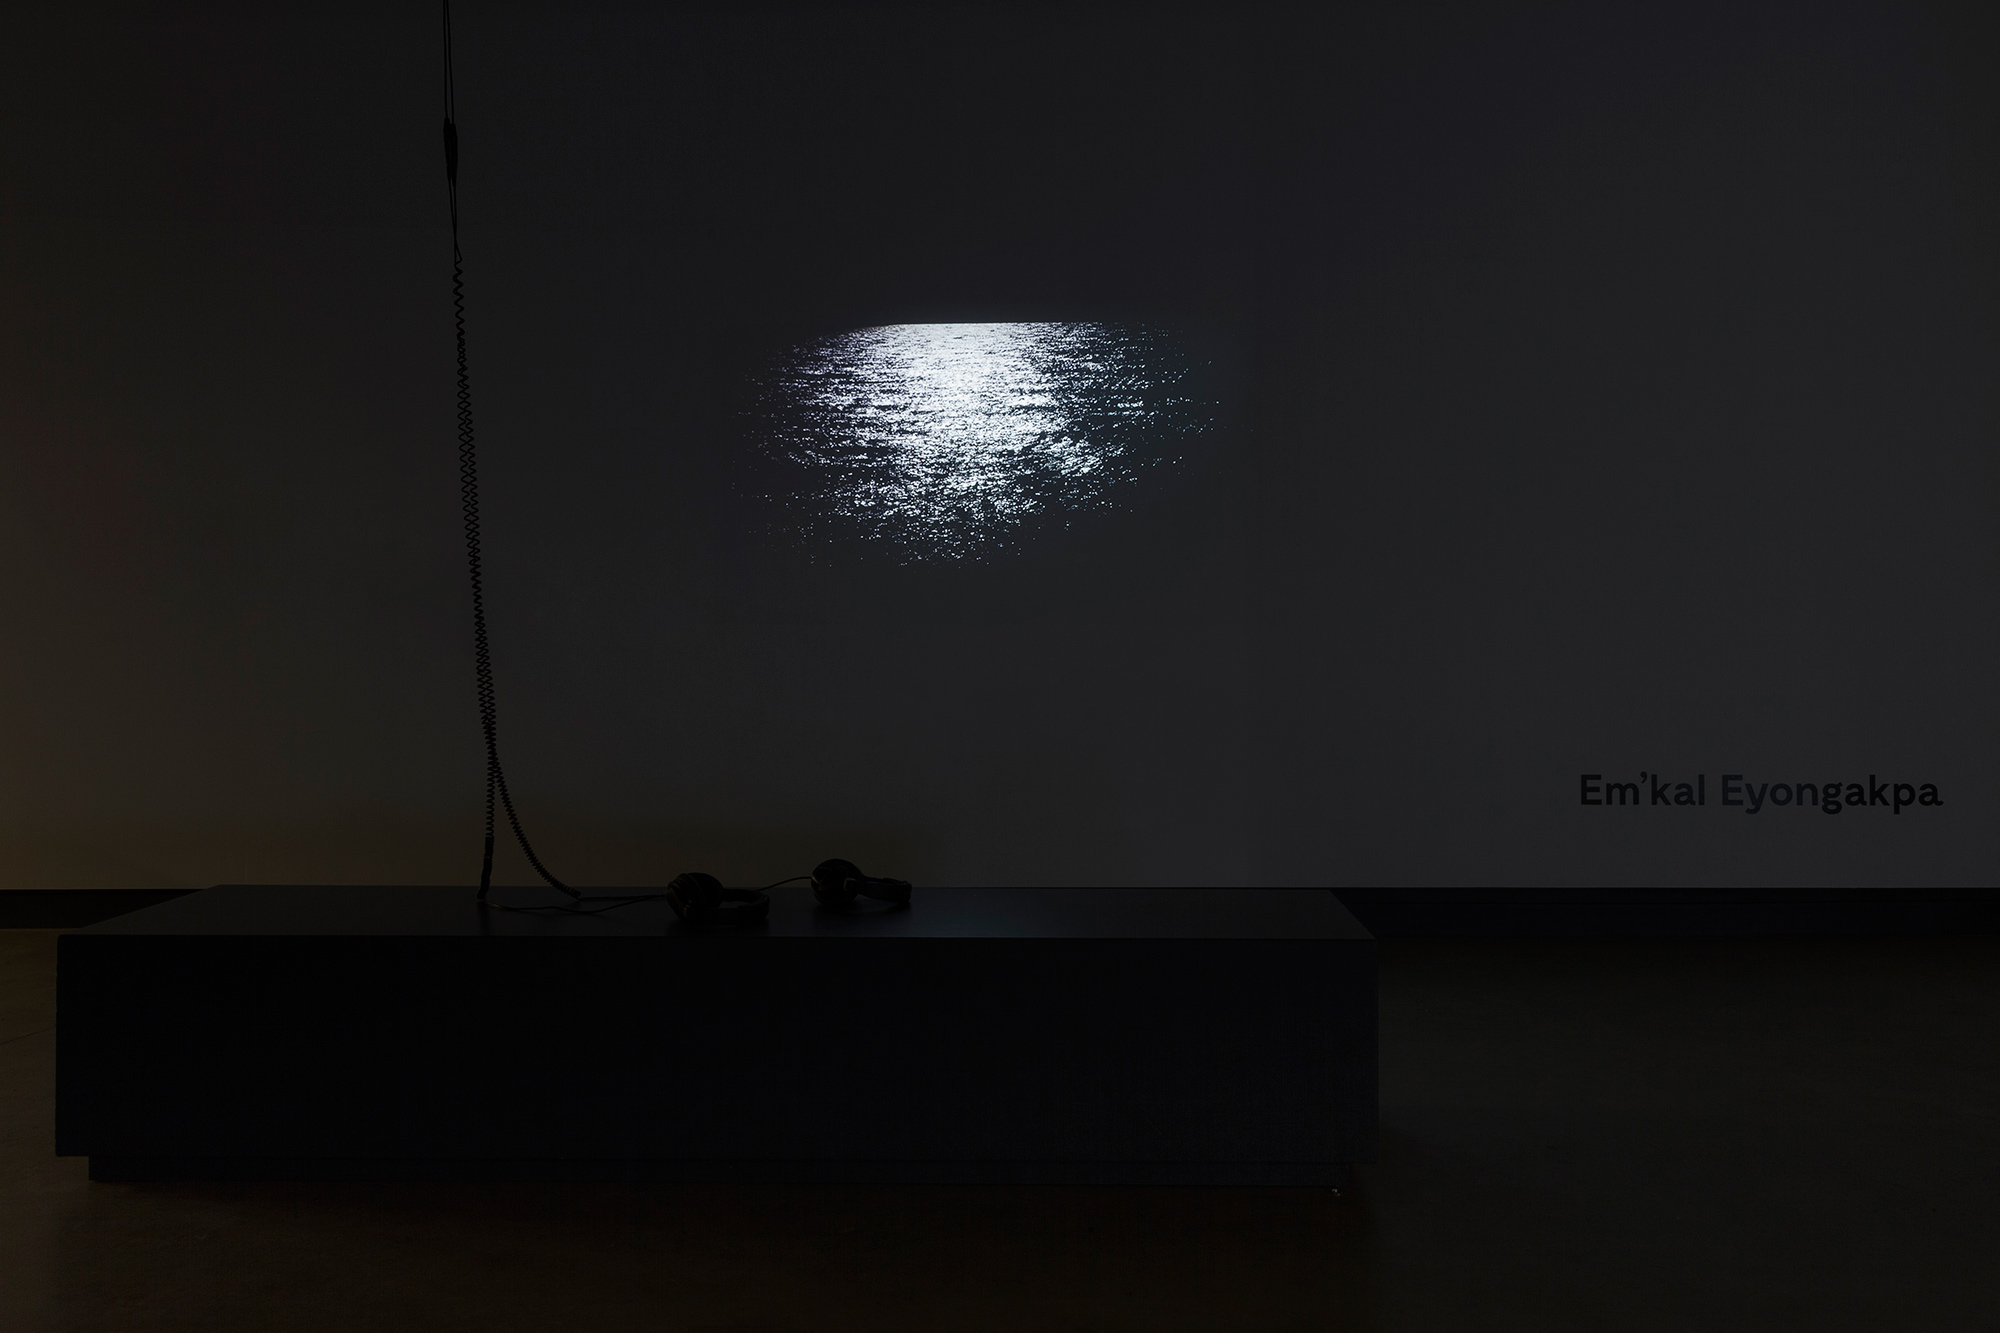 © Em'kal Eyongakpa, exhibition view of  Letters from Etokobarek 1-i (201-), presented in the context of BNLMTL 2016 – The Grand Balcony . Photo: Marilou Crispin.